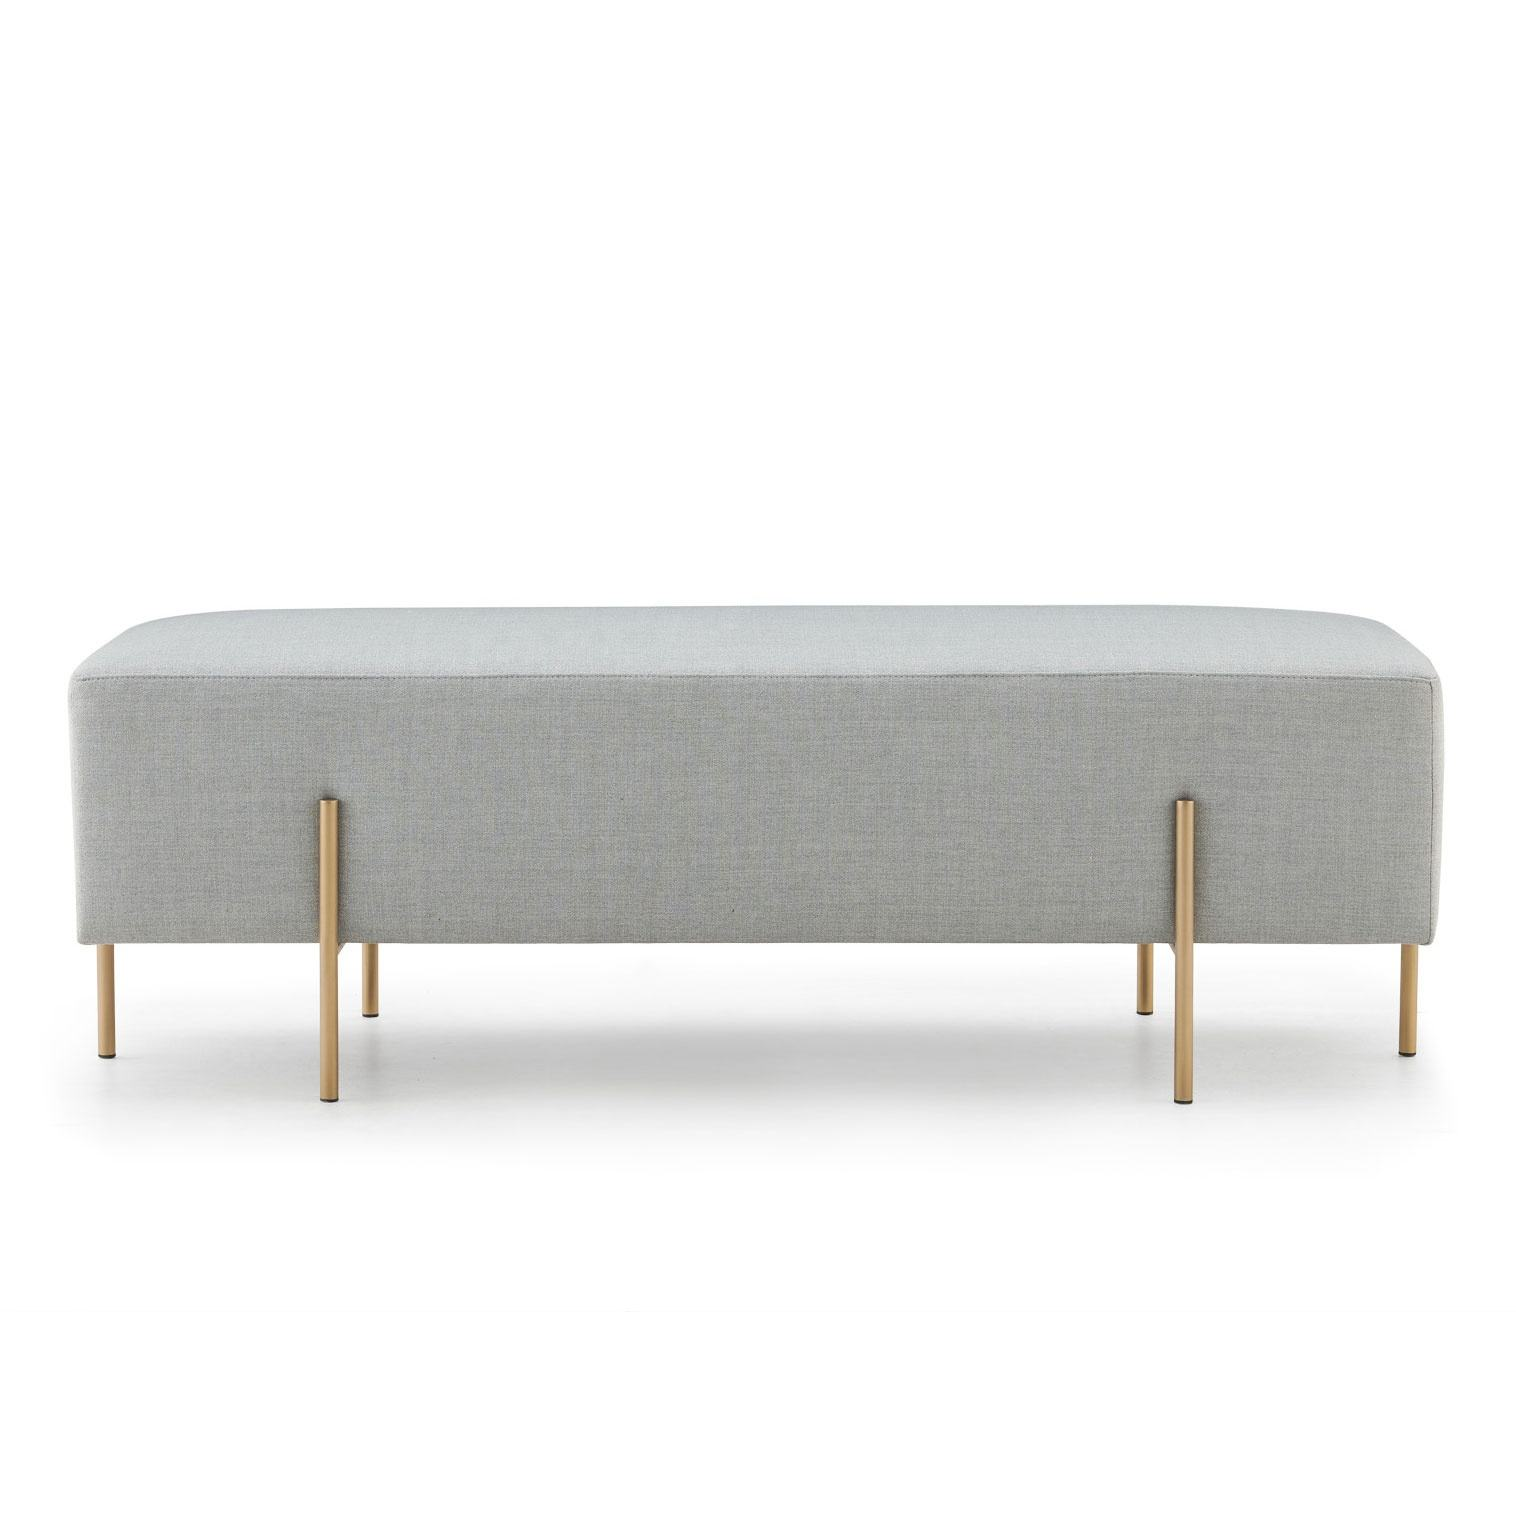 Modern bedroom grey fabric and metal stool chairs living room long upholstered bench ottoman